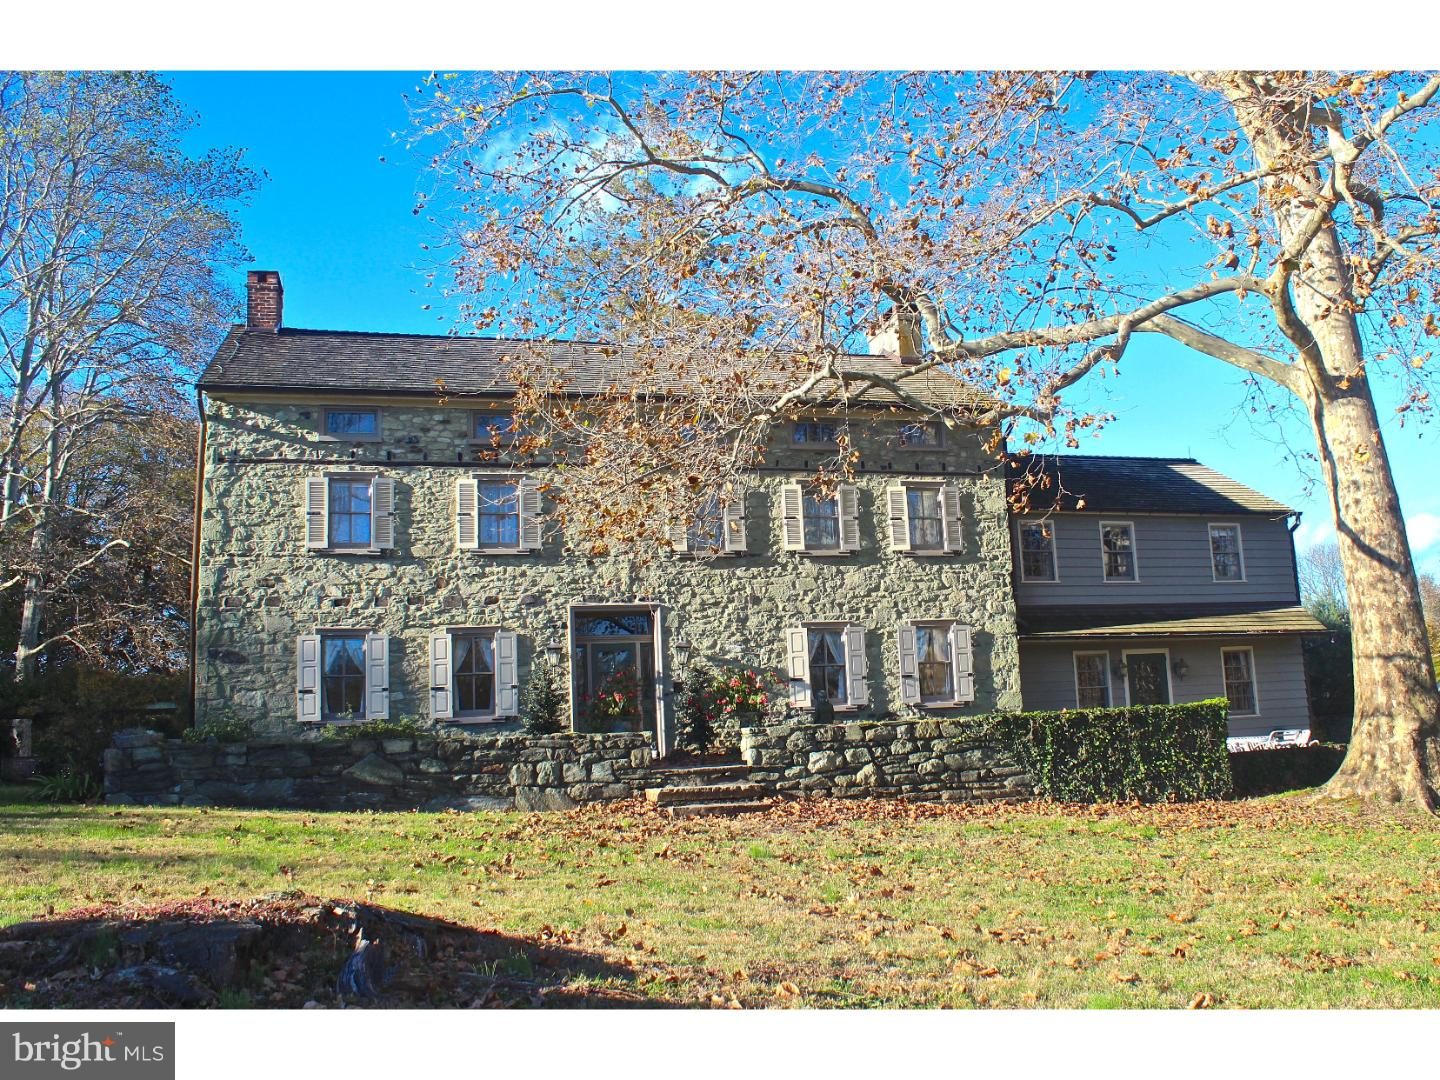 1175 BIRMINGHAM ROAD, WEST CHESTER, PA 19382